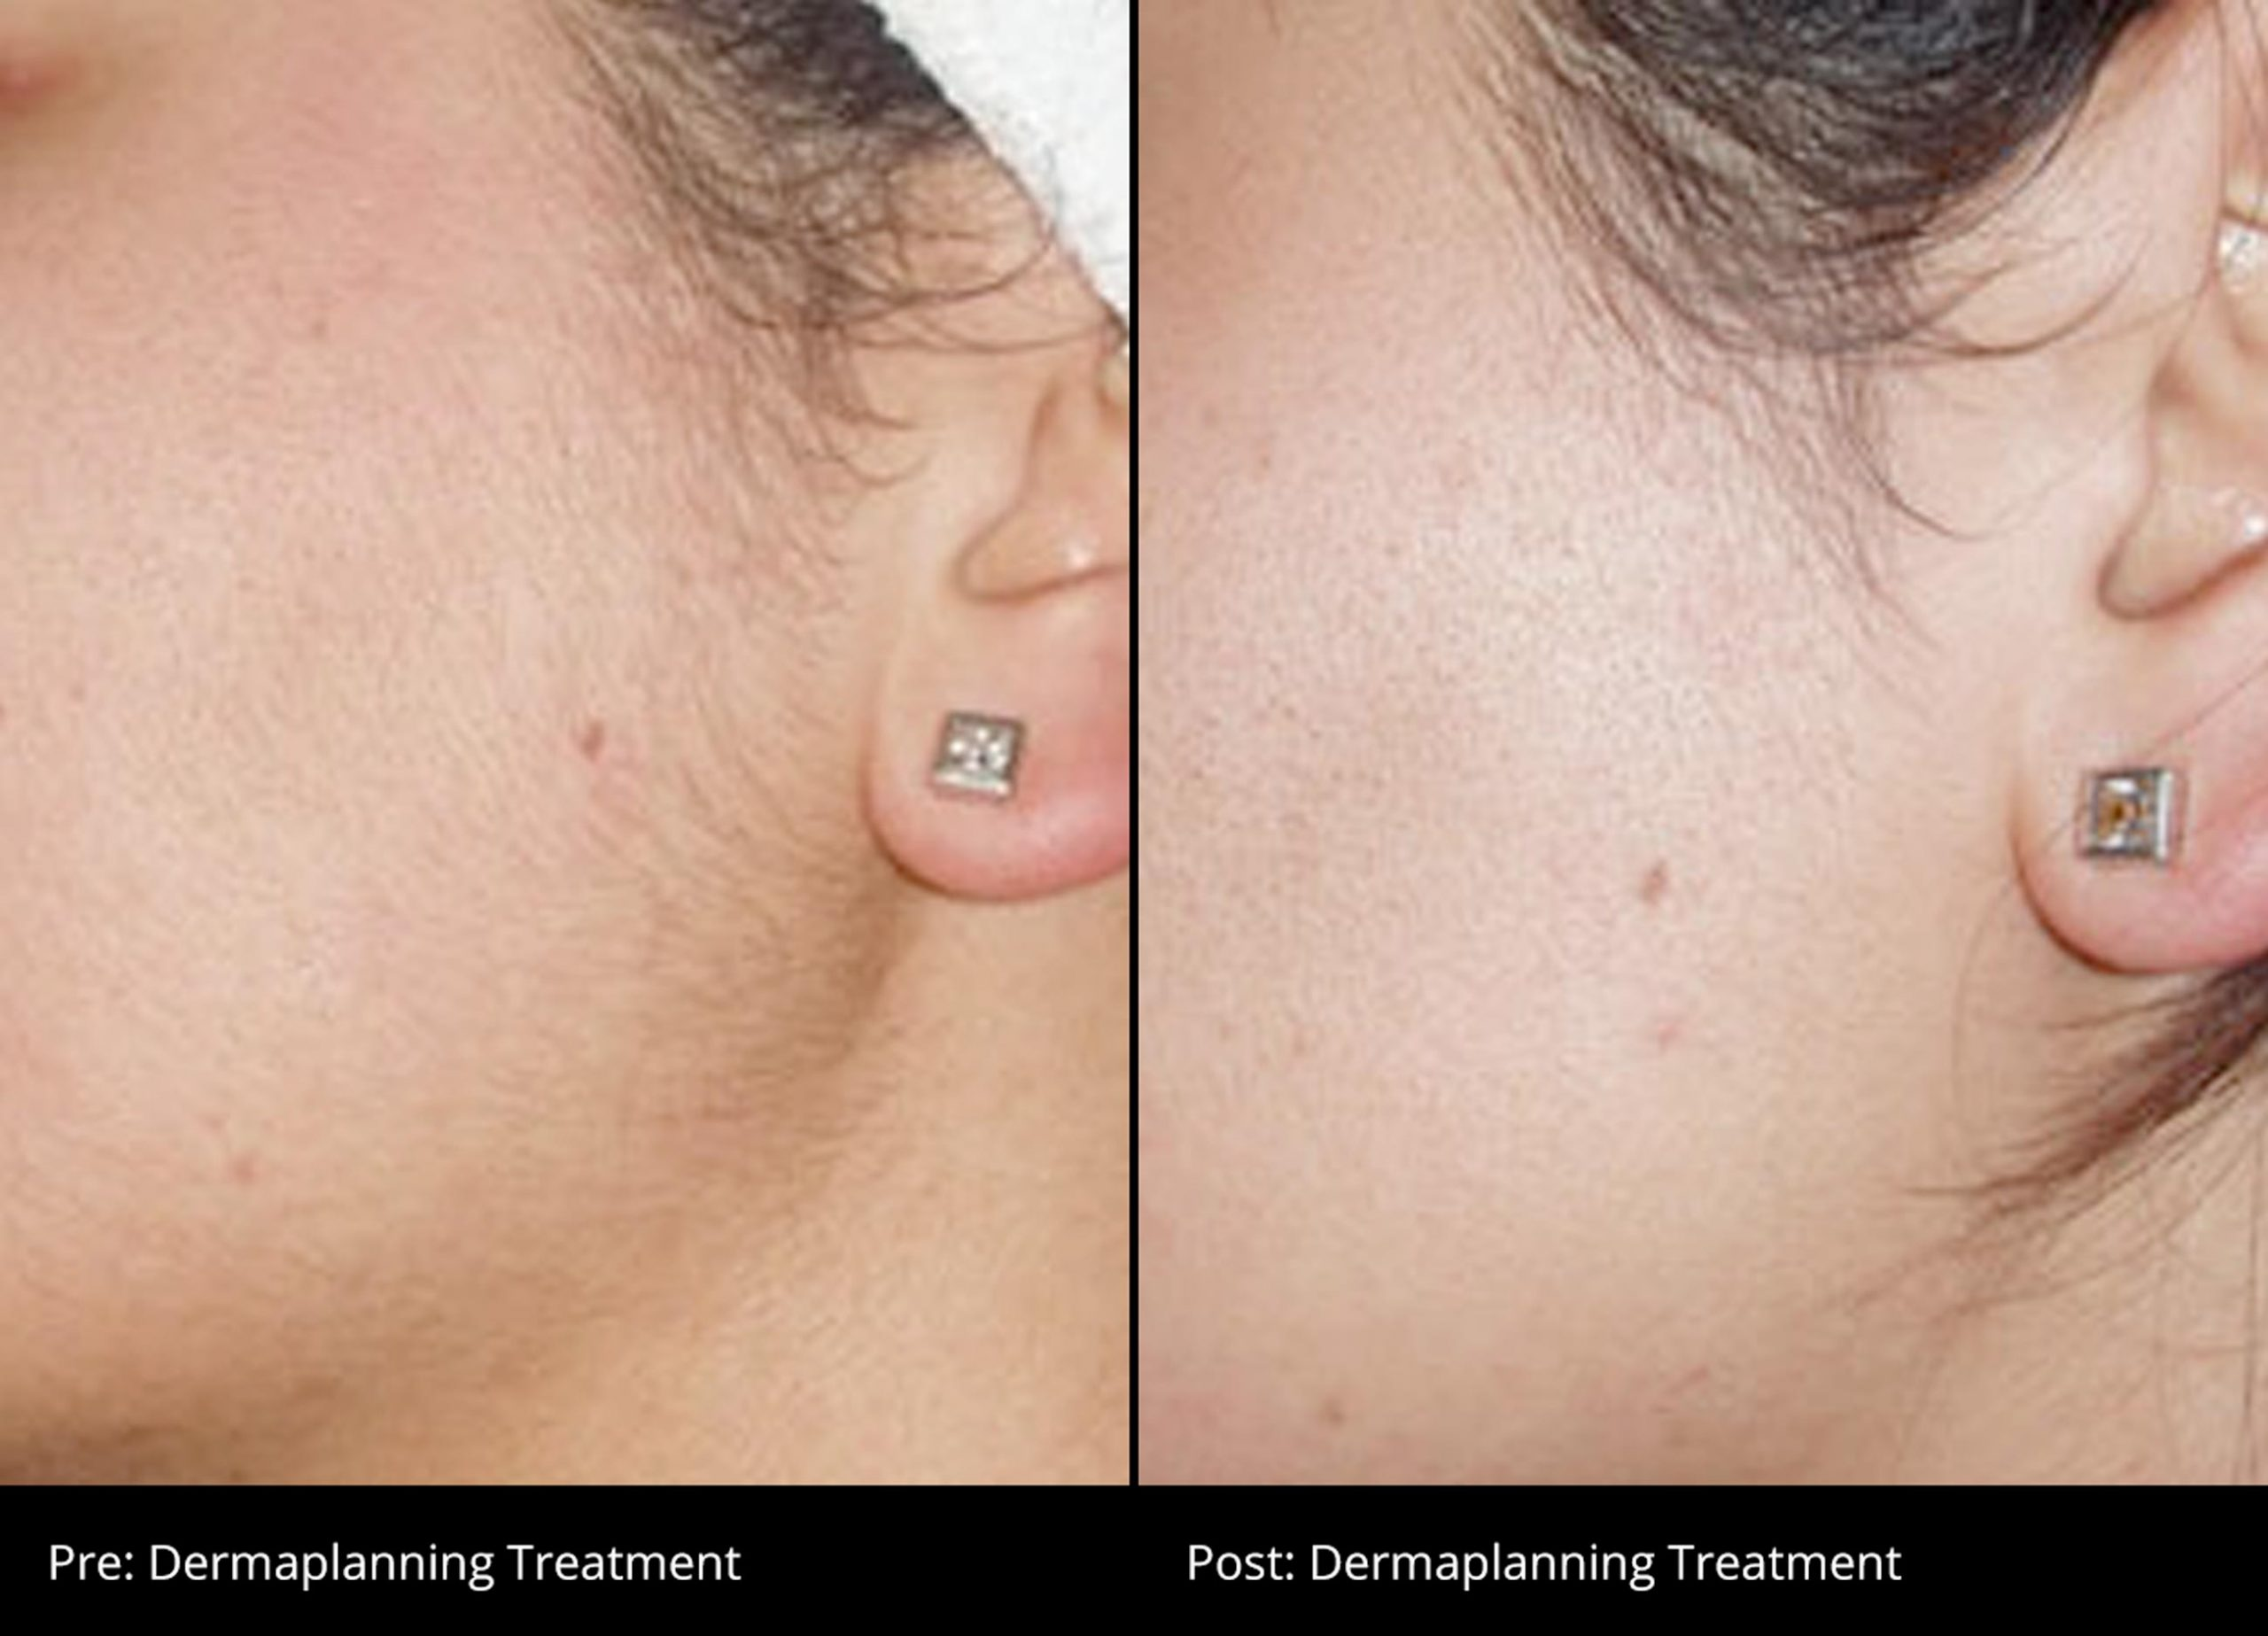 Dermaplanning before and after